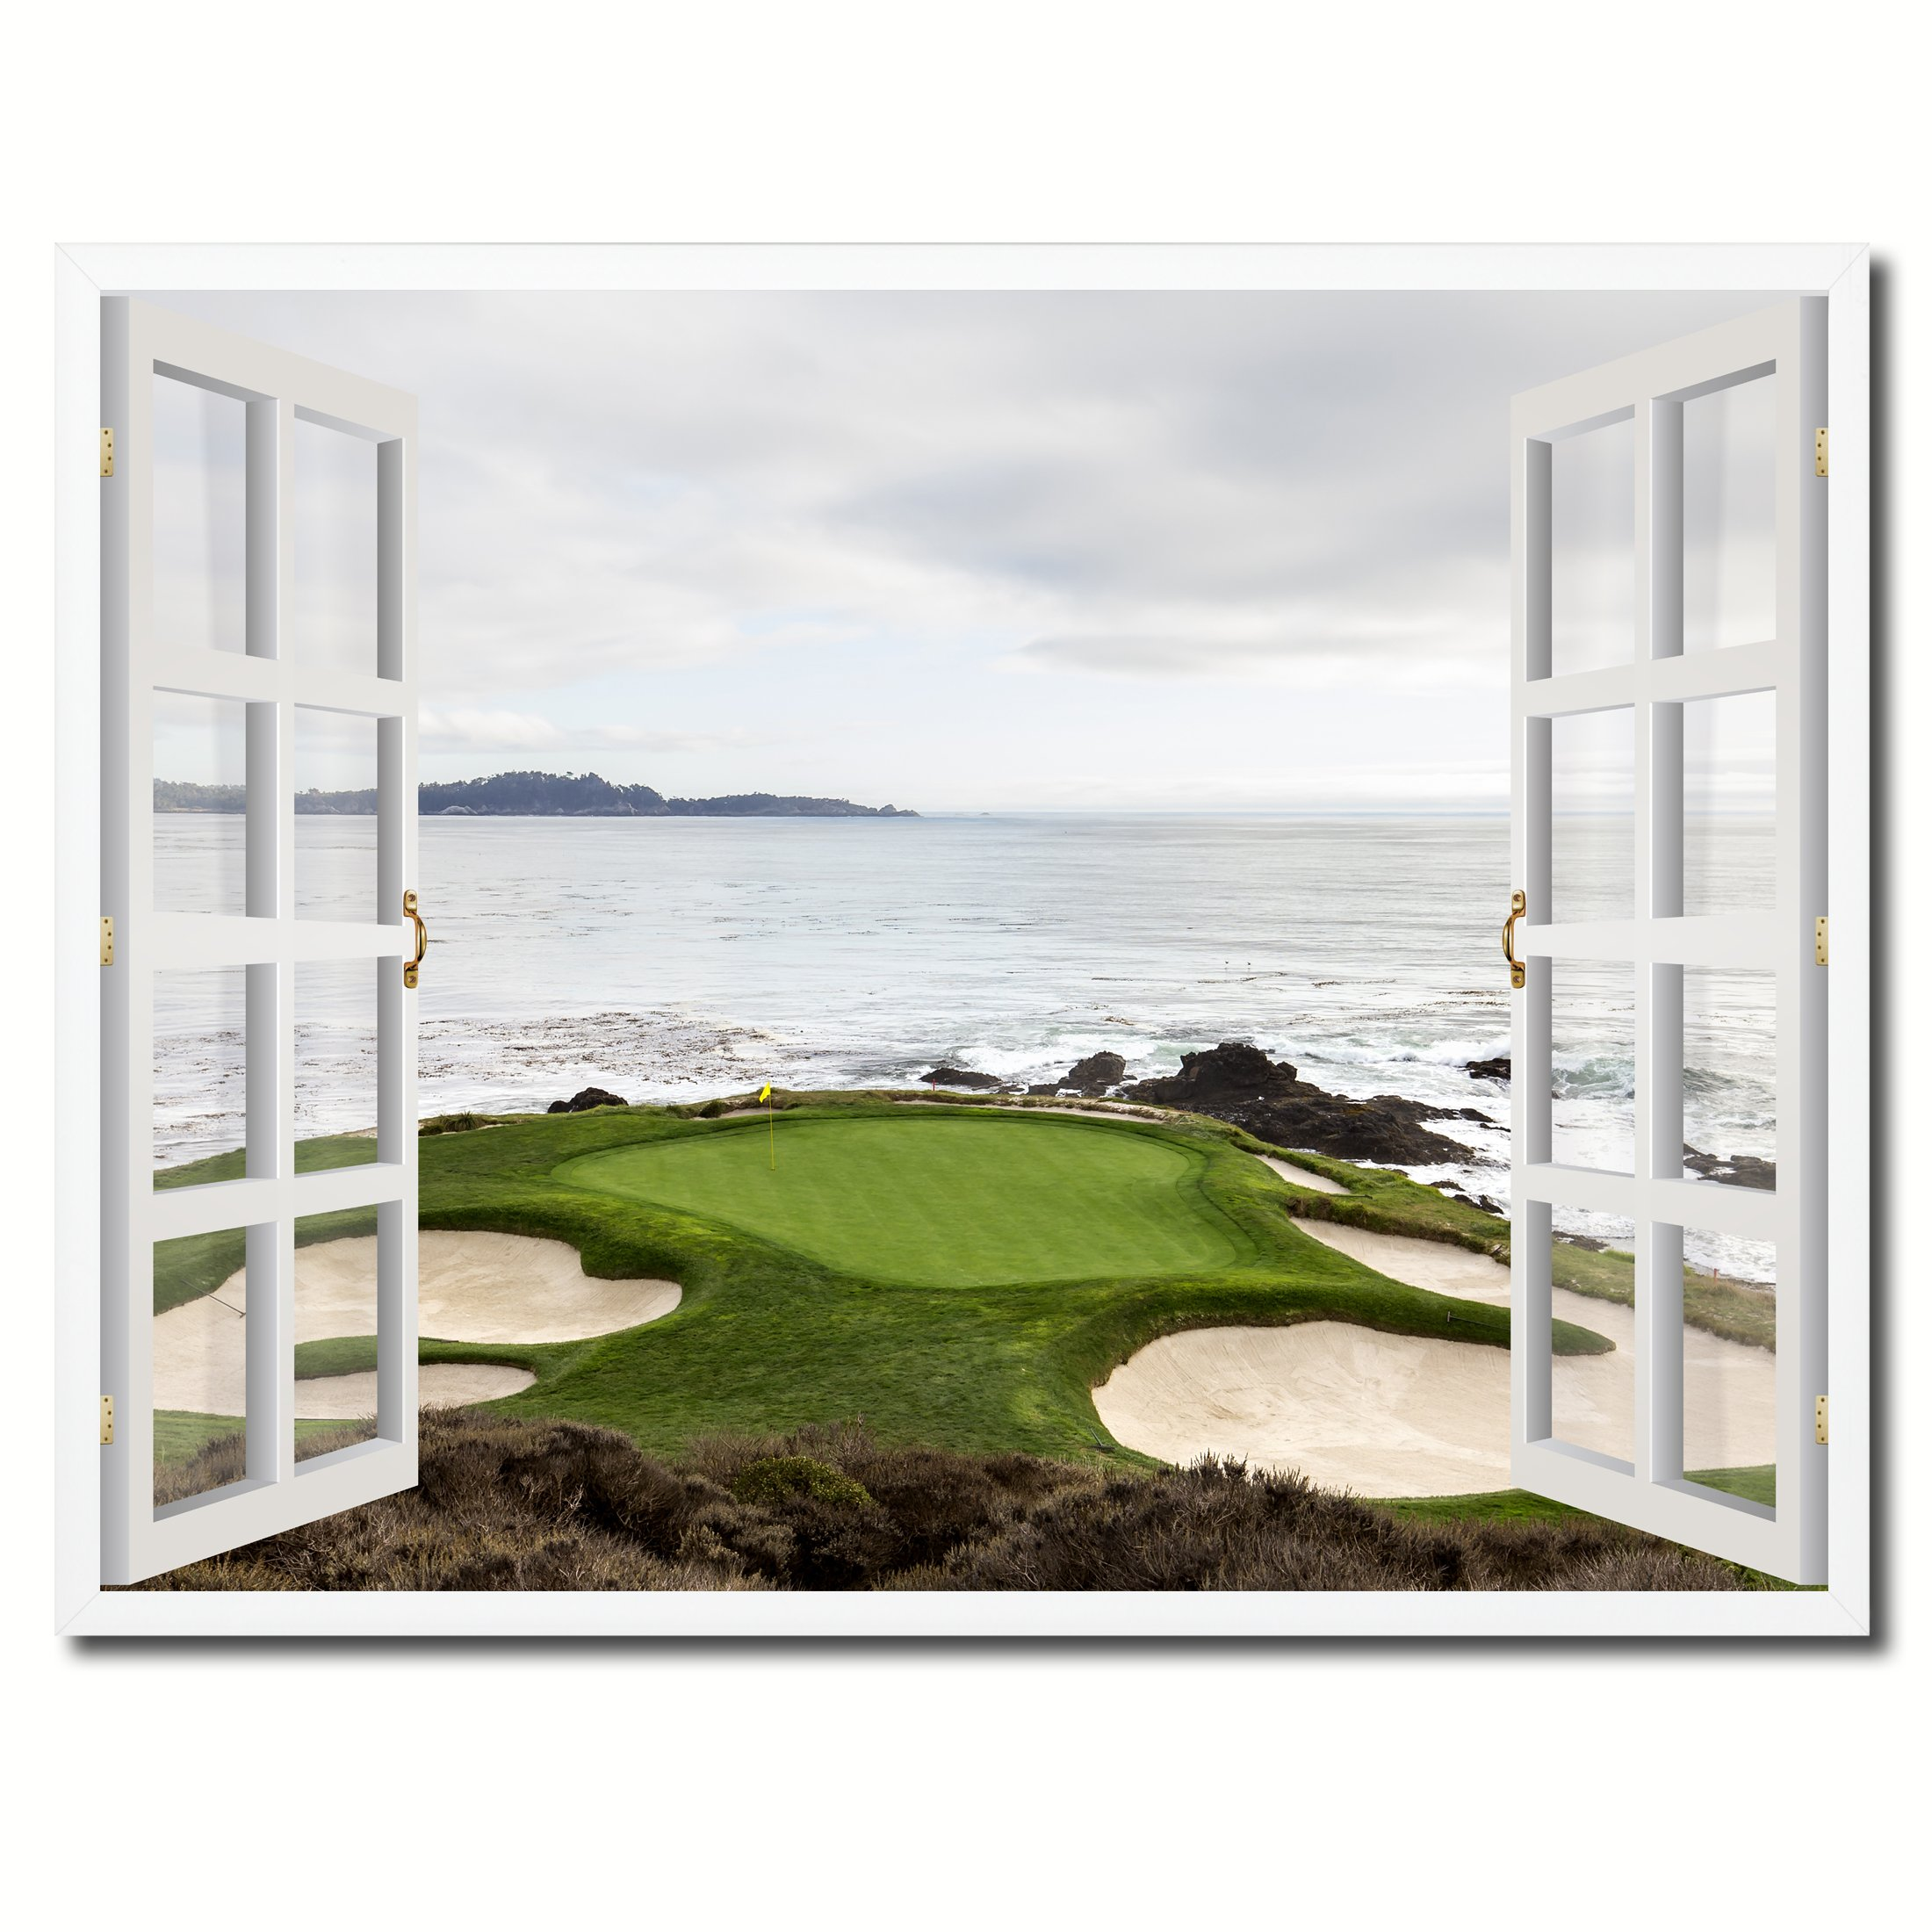 Pebble Beach California Golf Course Picture French Window Art Framed Print on Canvas Office Wall Home Decor Collection Gift Ideas, 7''x9''